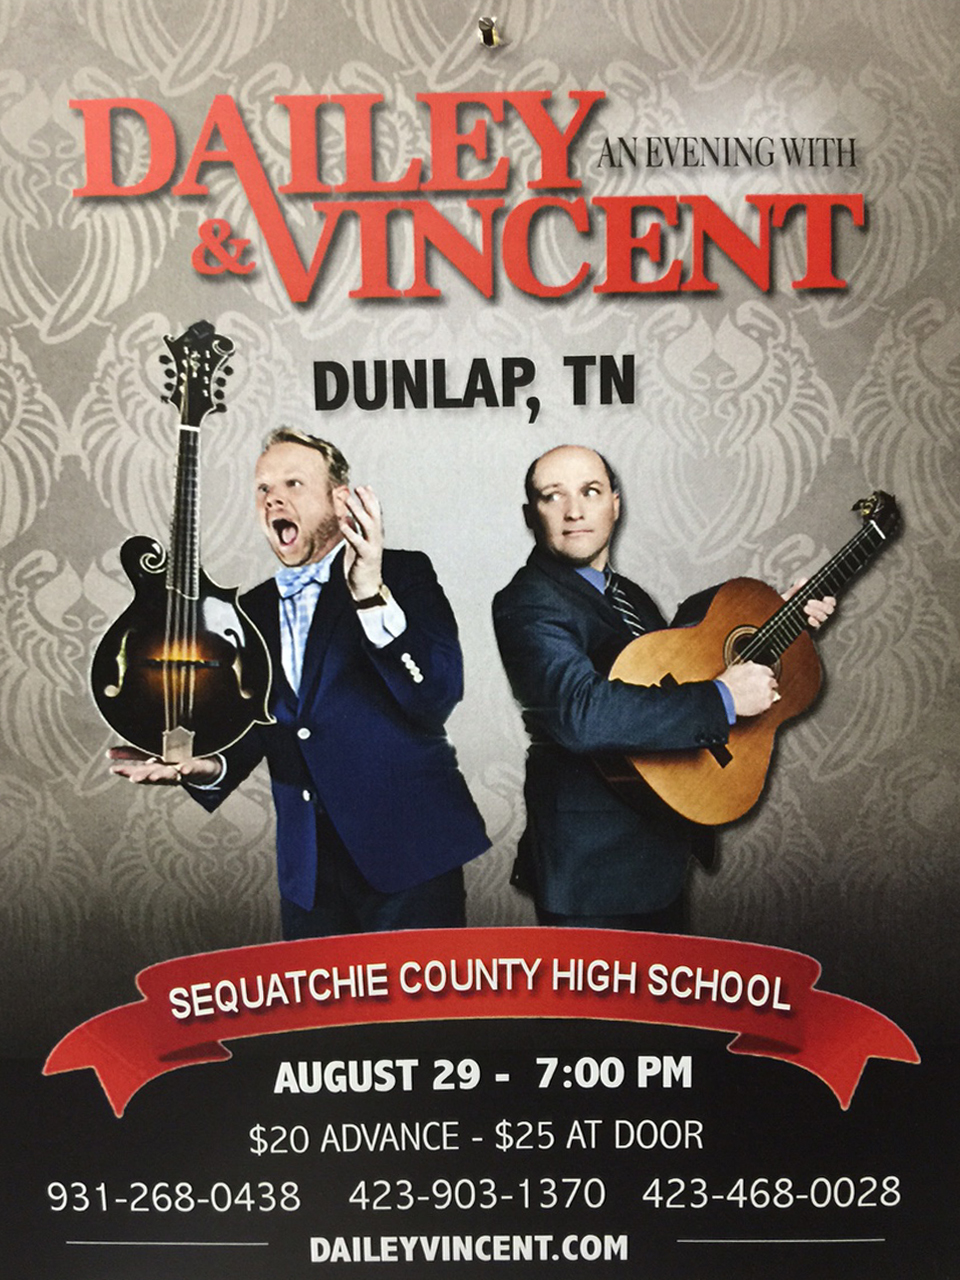 Dailey & Vincent in Dunlap